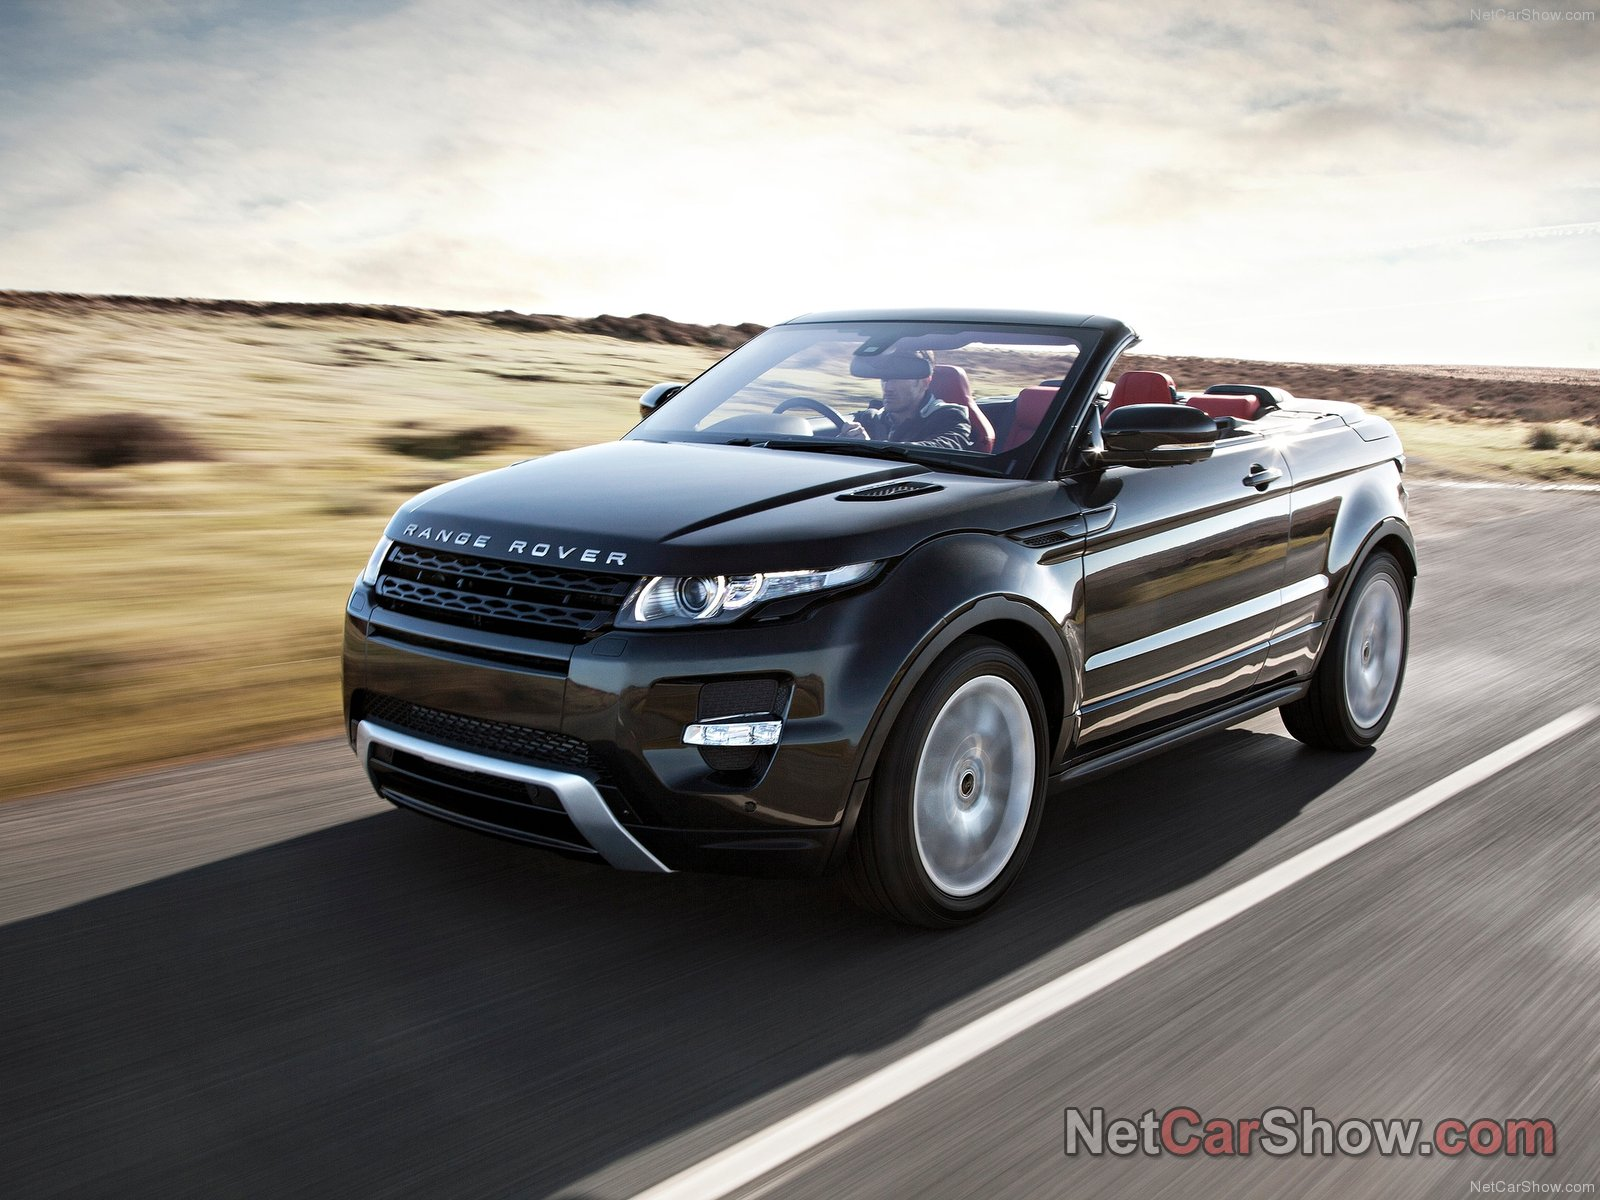 Land Rover Range Rover Evoque Convertible photo 91085